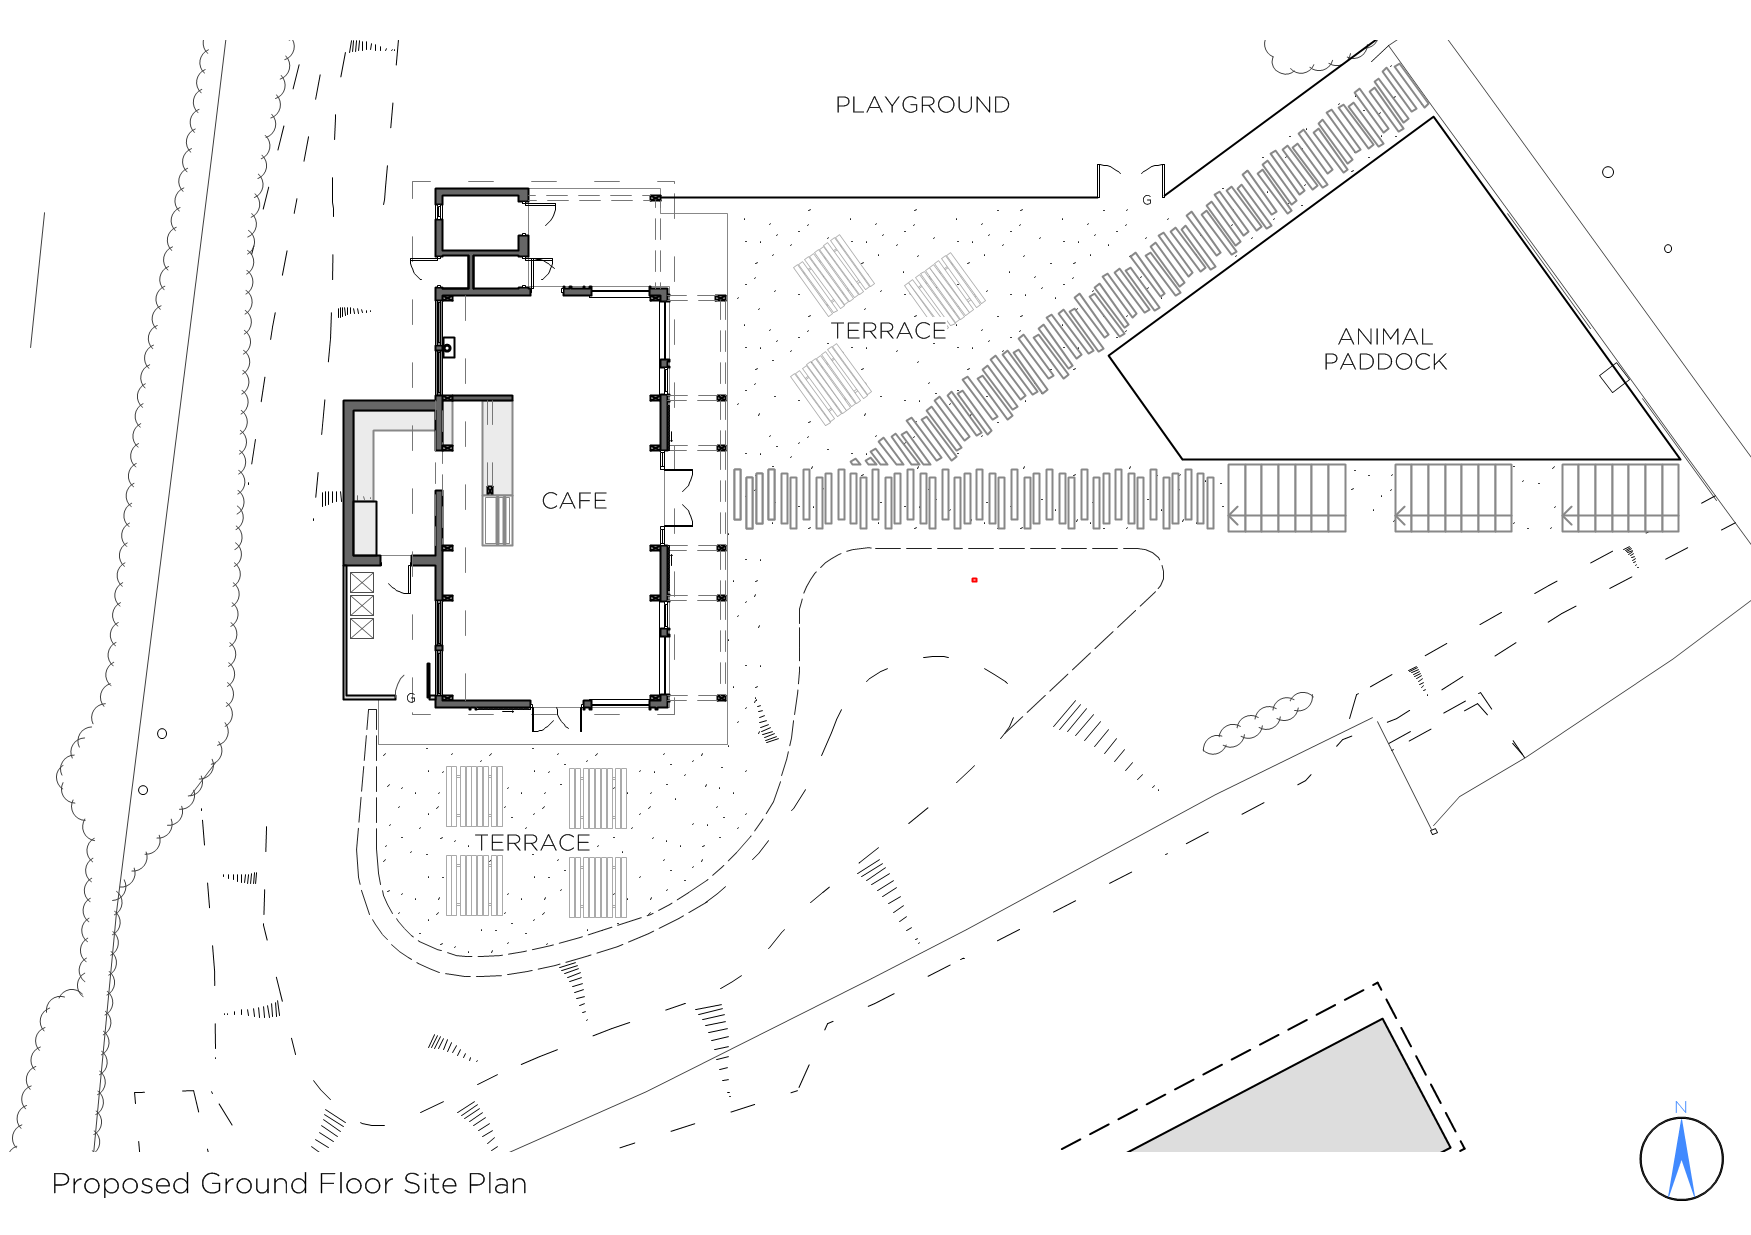 Image illustrating the ground floor site plan of the proposed cafe at bath city farm, highlighting how to building sits within the landscape